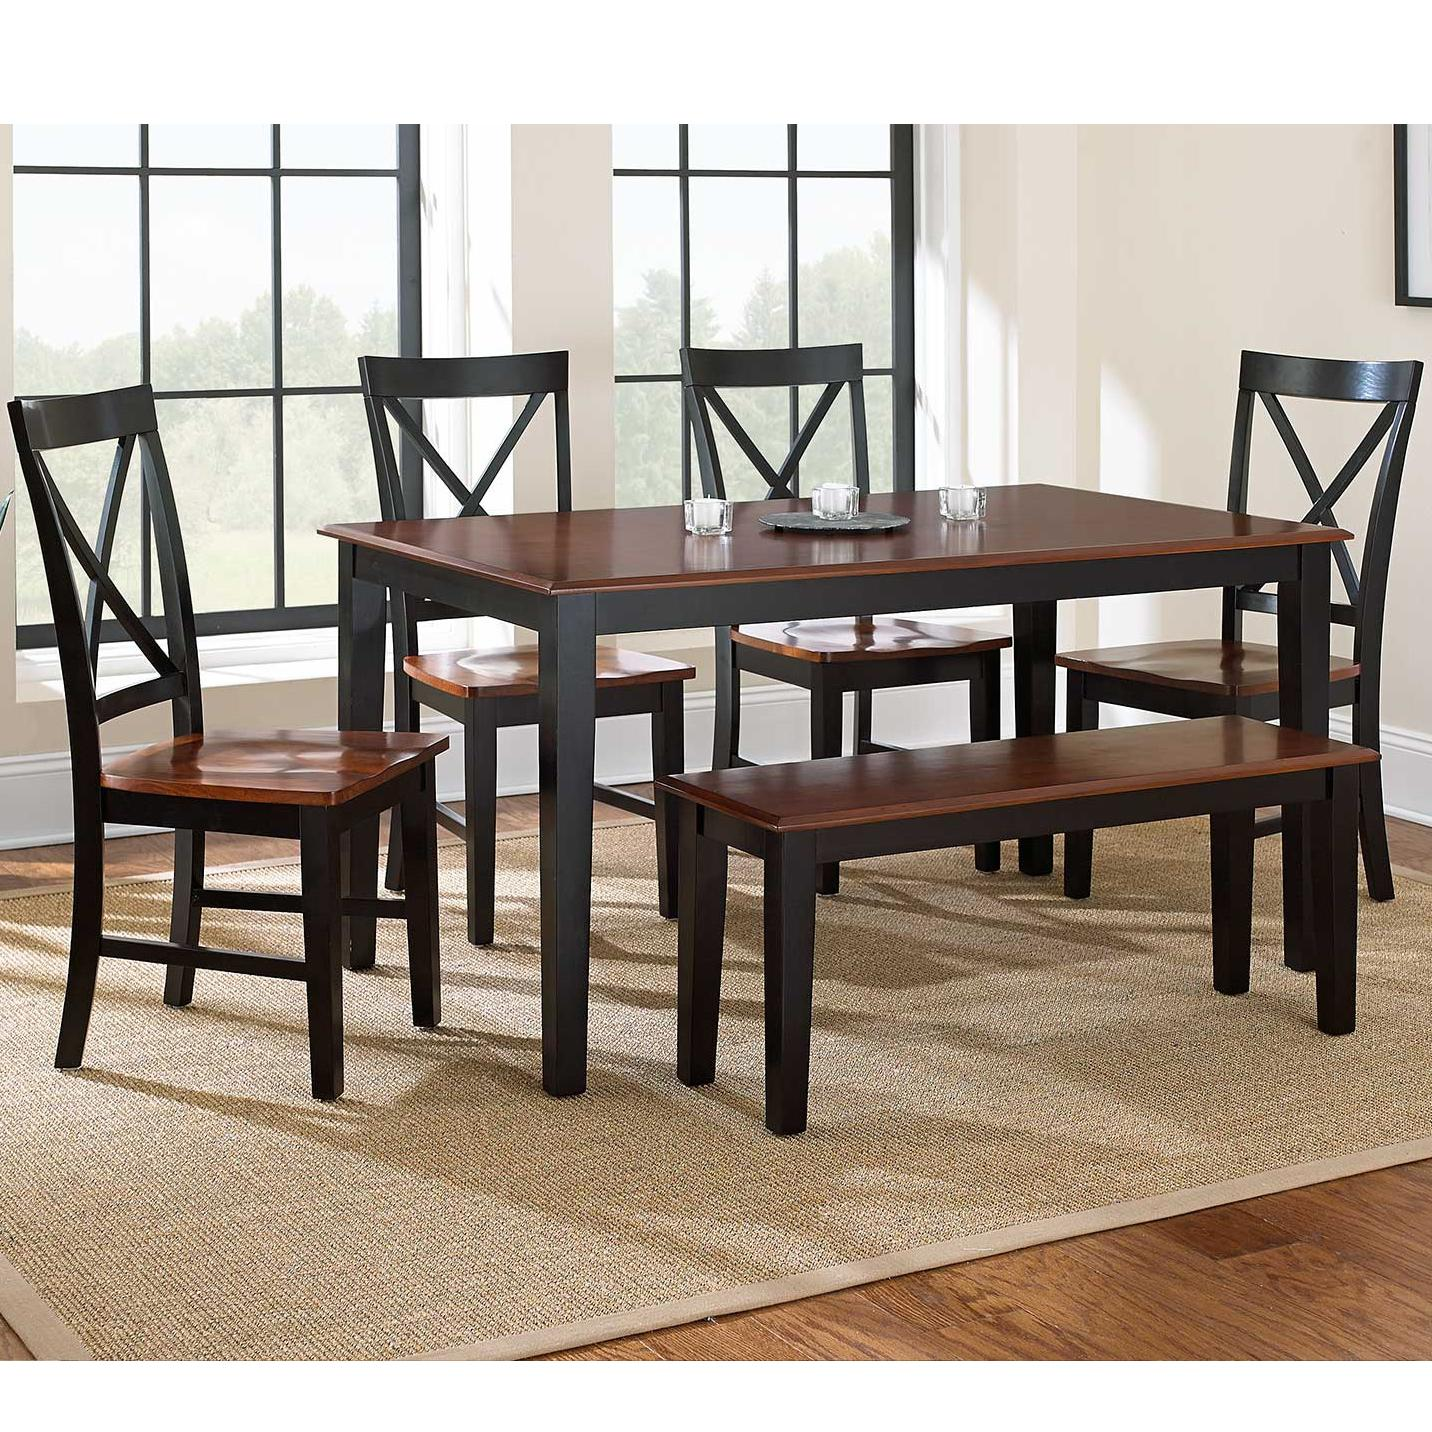 Steve Silver Kingston 6 Piece Casual Dining Table Bench Side Chair Set Olinde 39 S Furniture